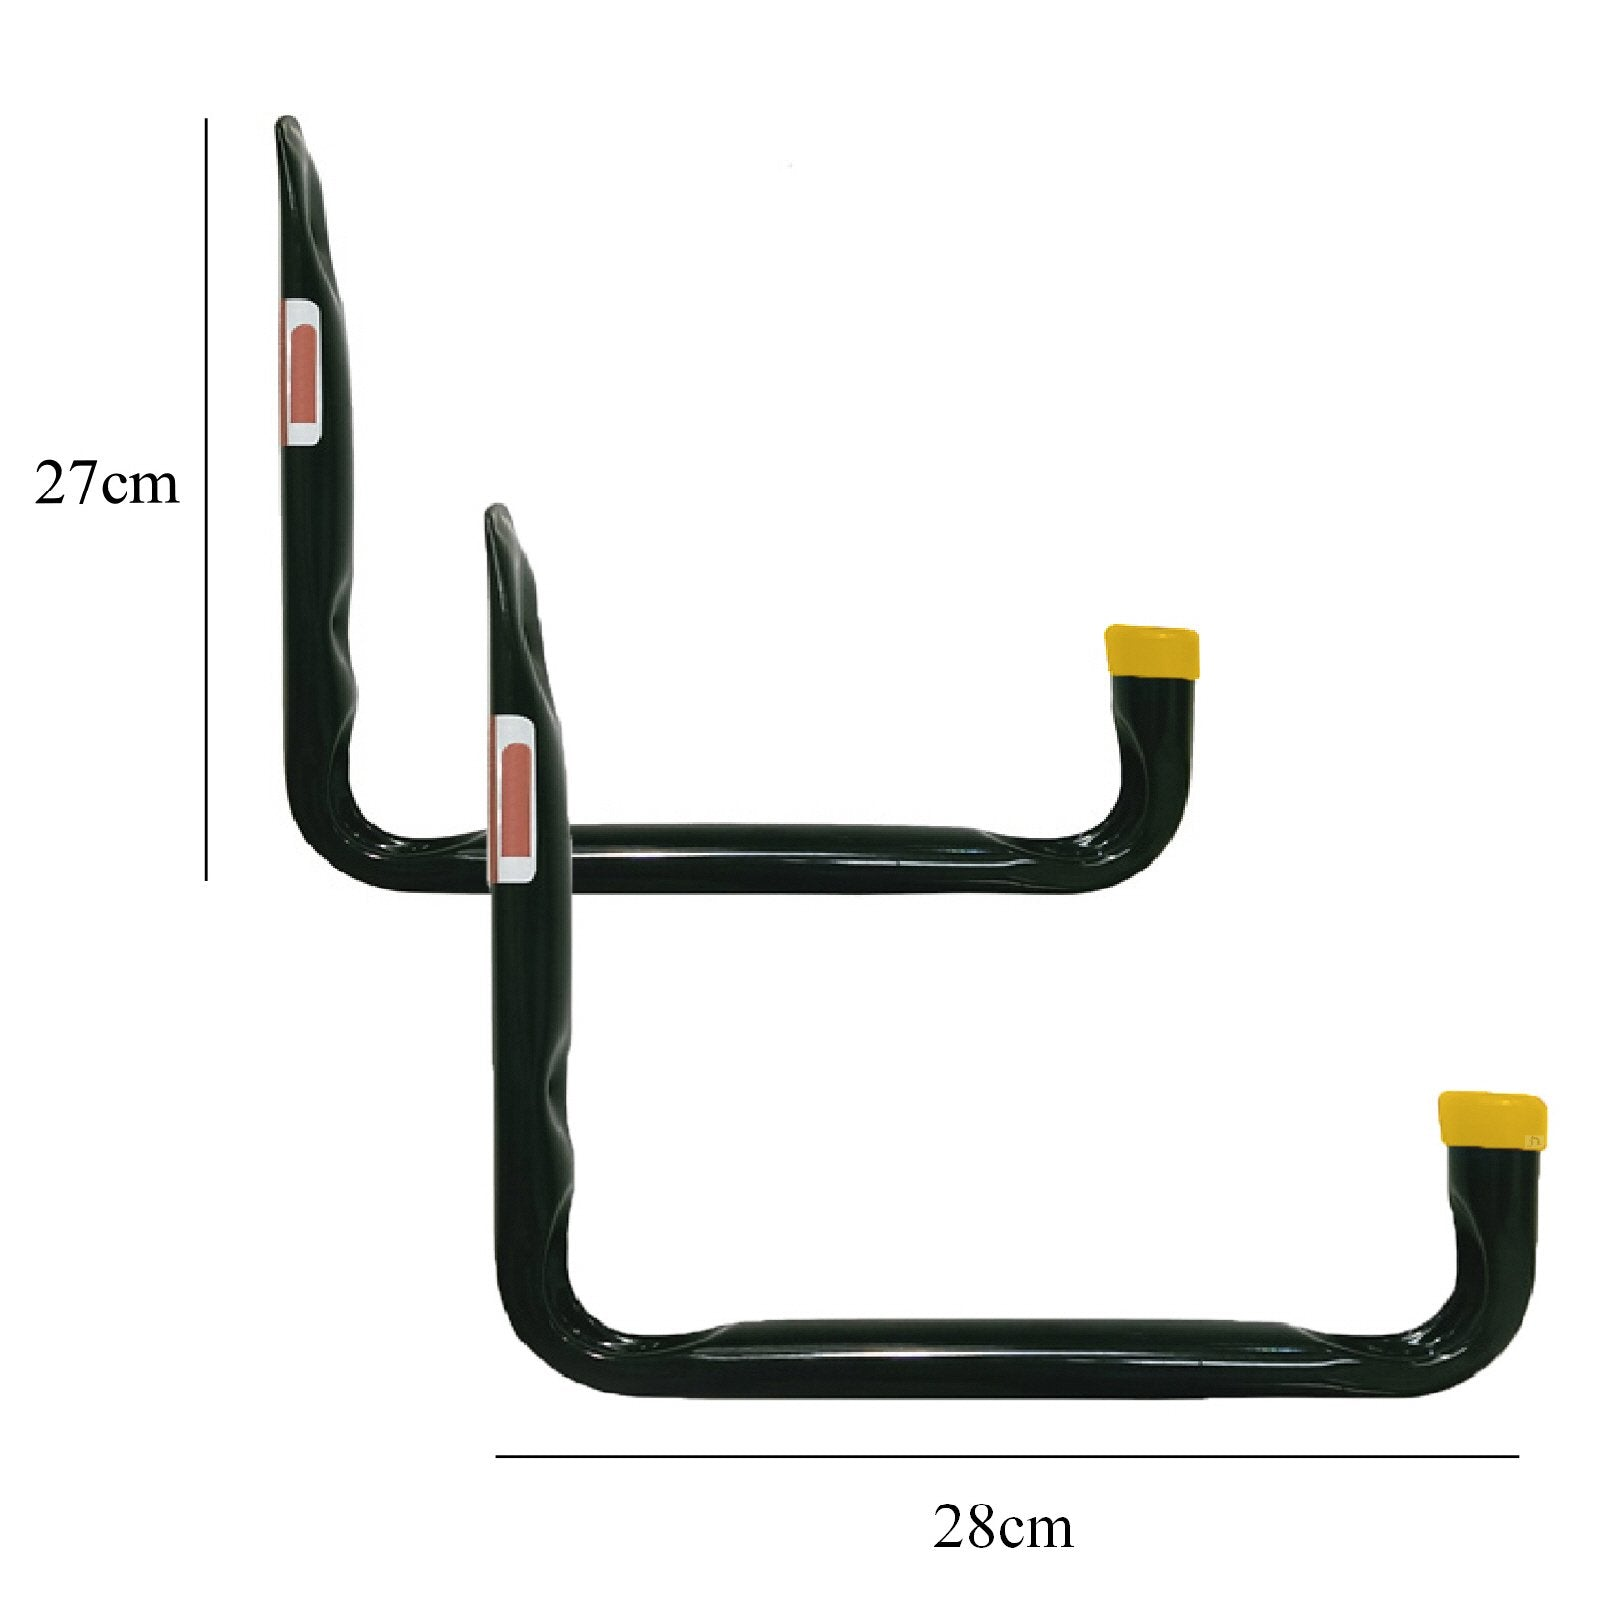 2 x Large 60kg Heavy Duty Storage Hooks Wall Mounted Utility Hook